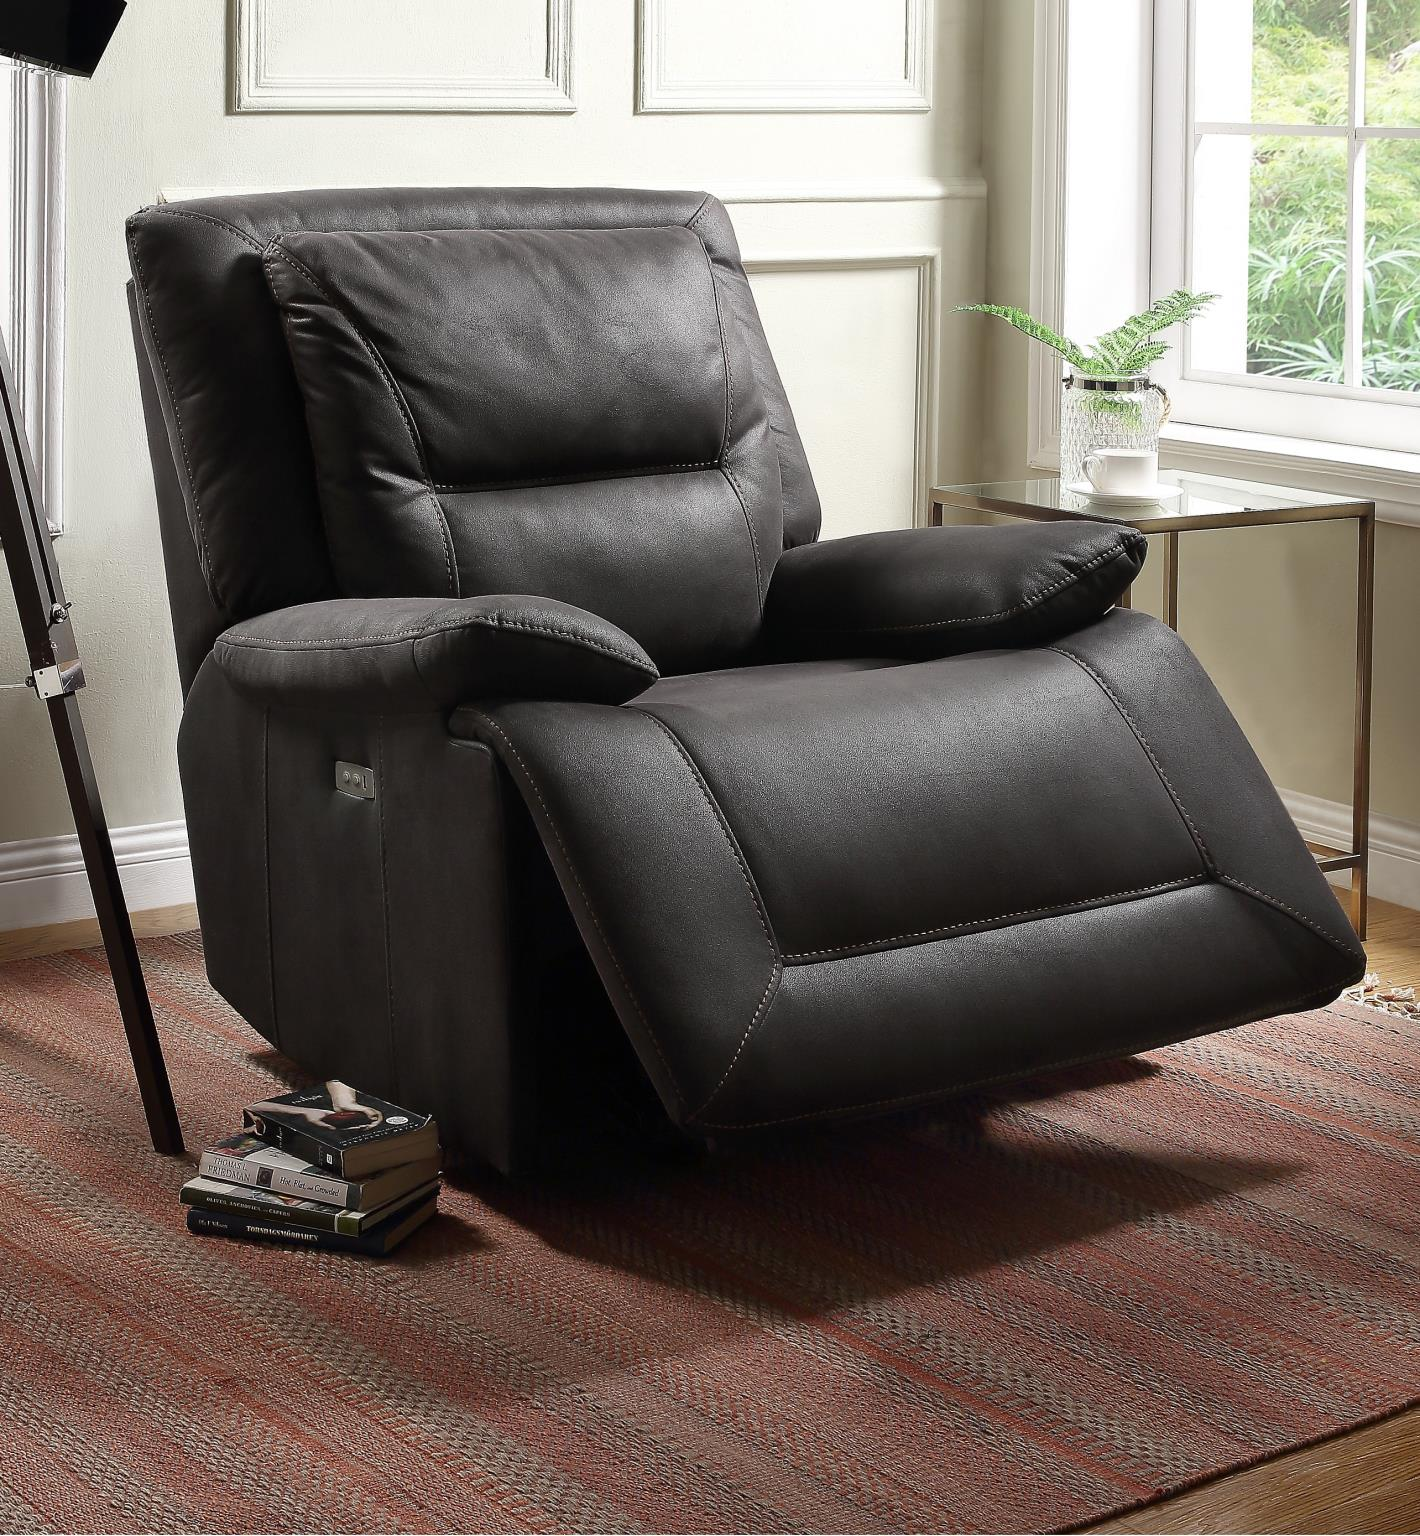 Neely Charcoal Power Motion Recliner - KTL Furniture